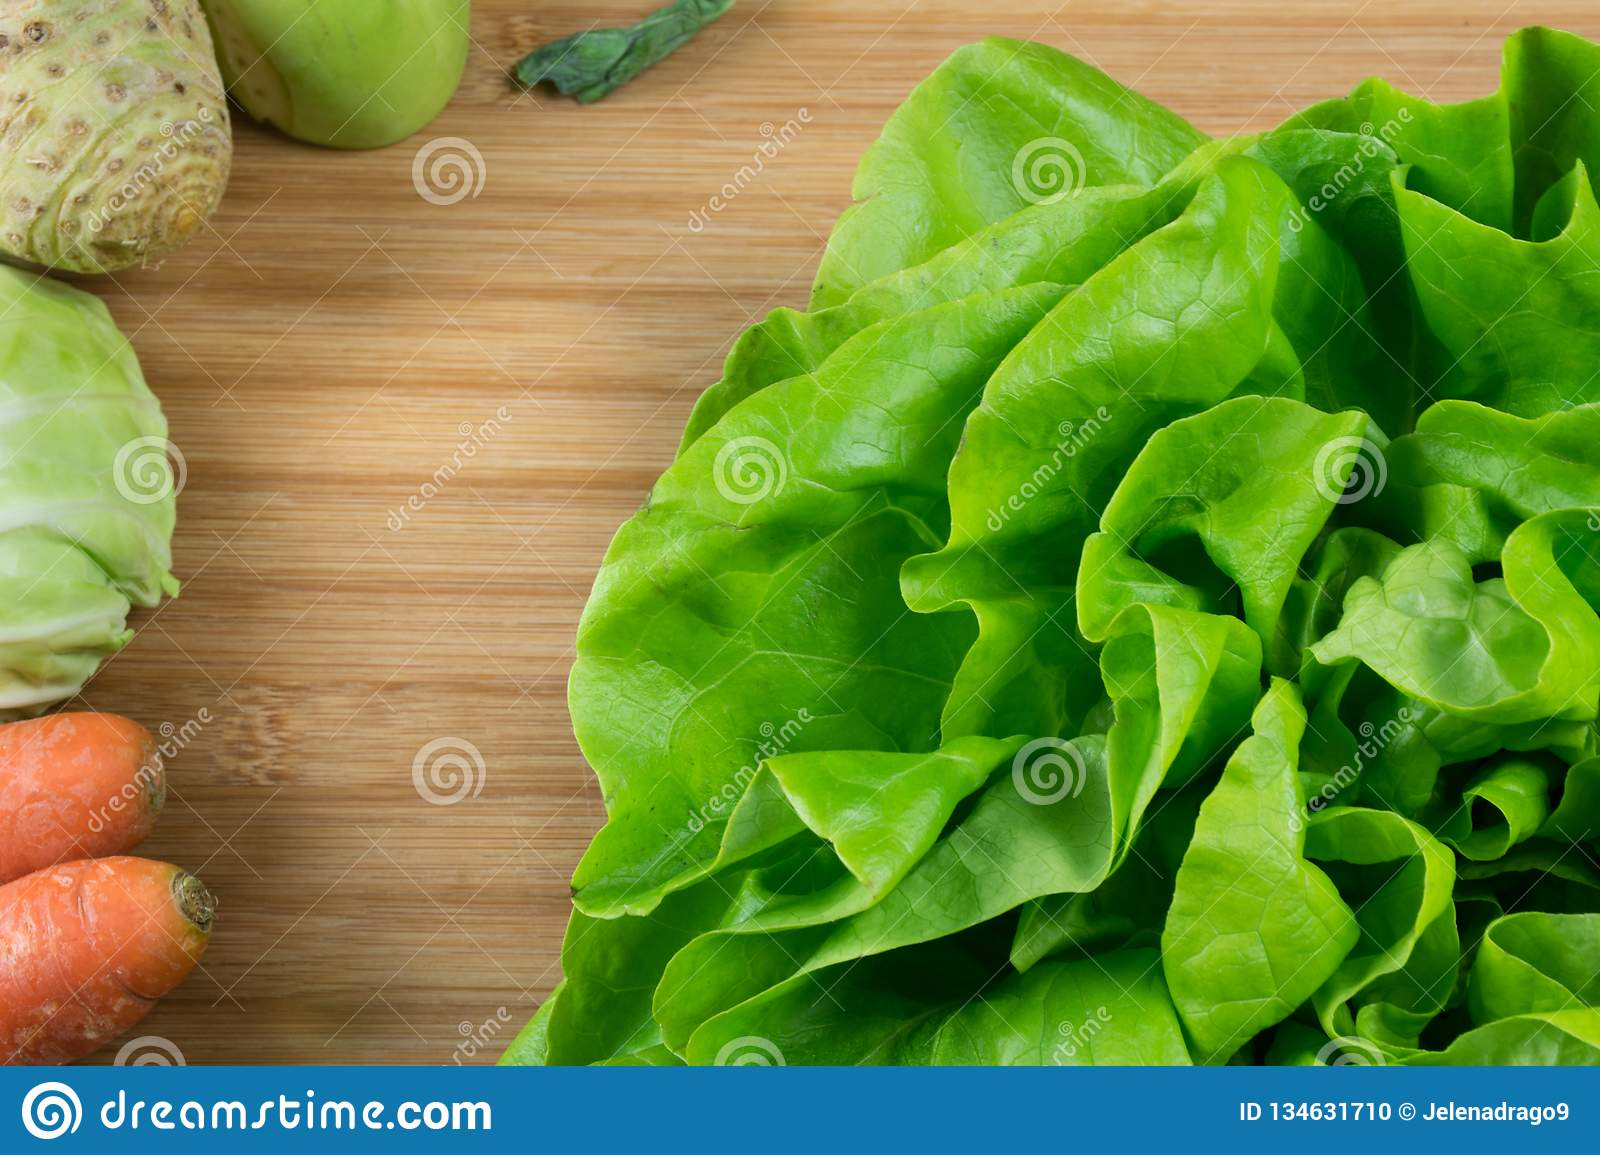 Fresh green lettuce on the cod board and fresh vegetables, carrot, cabbage, celery and kohlrabi on the side.